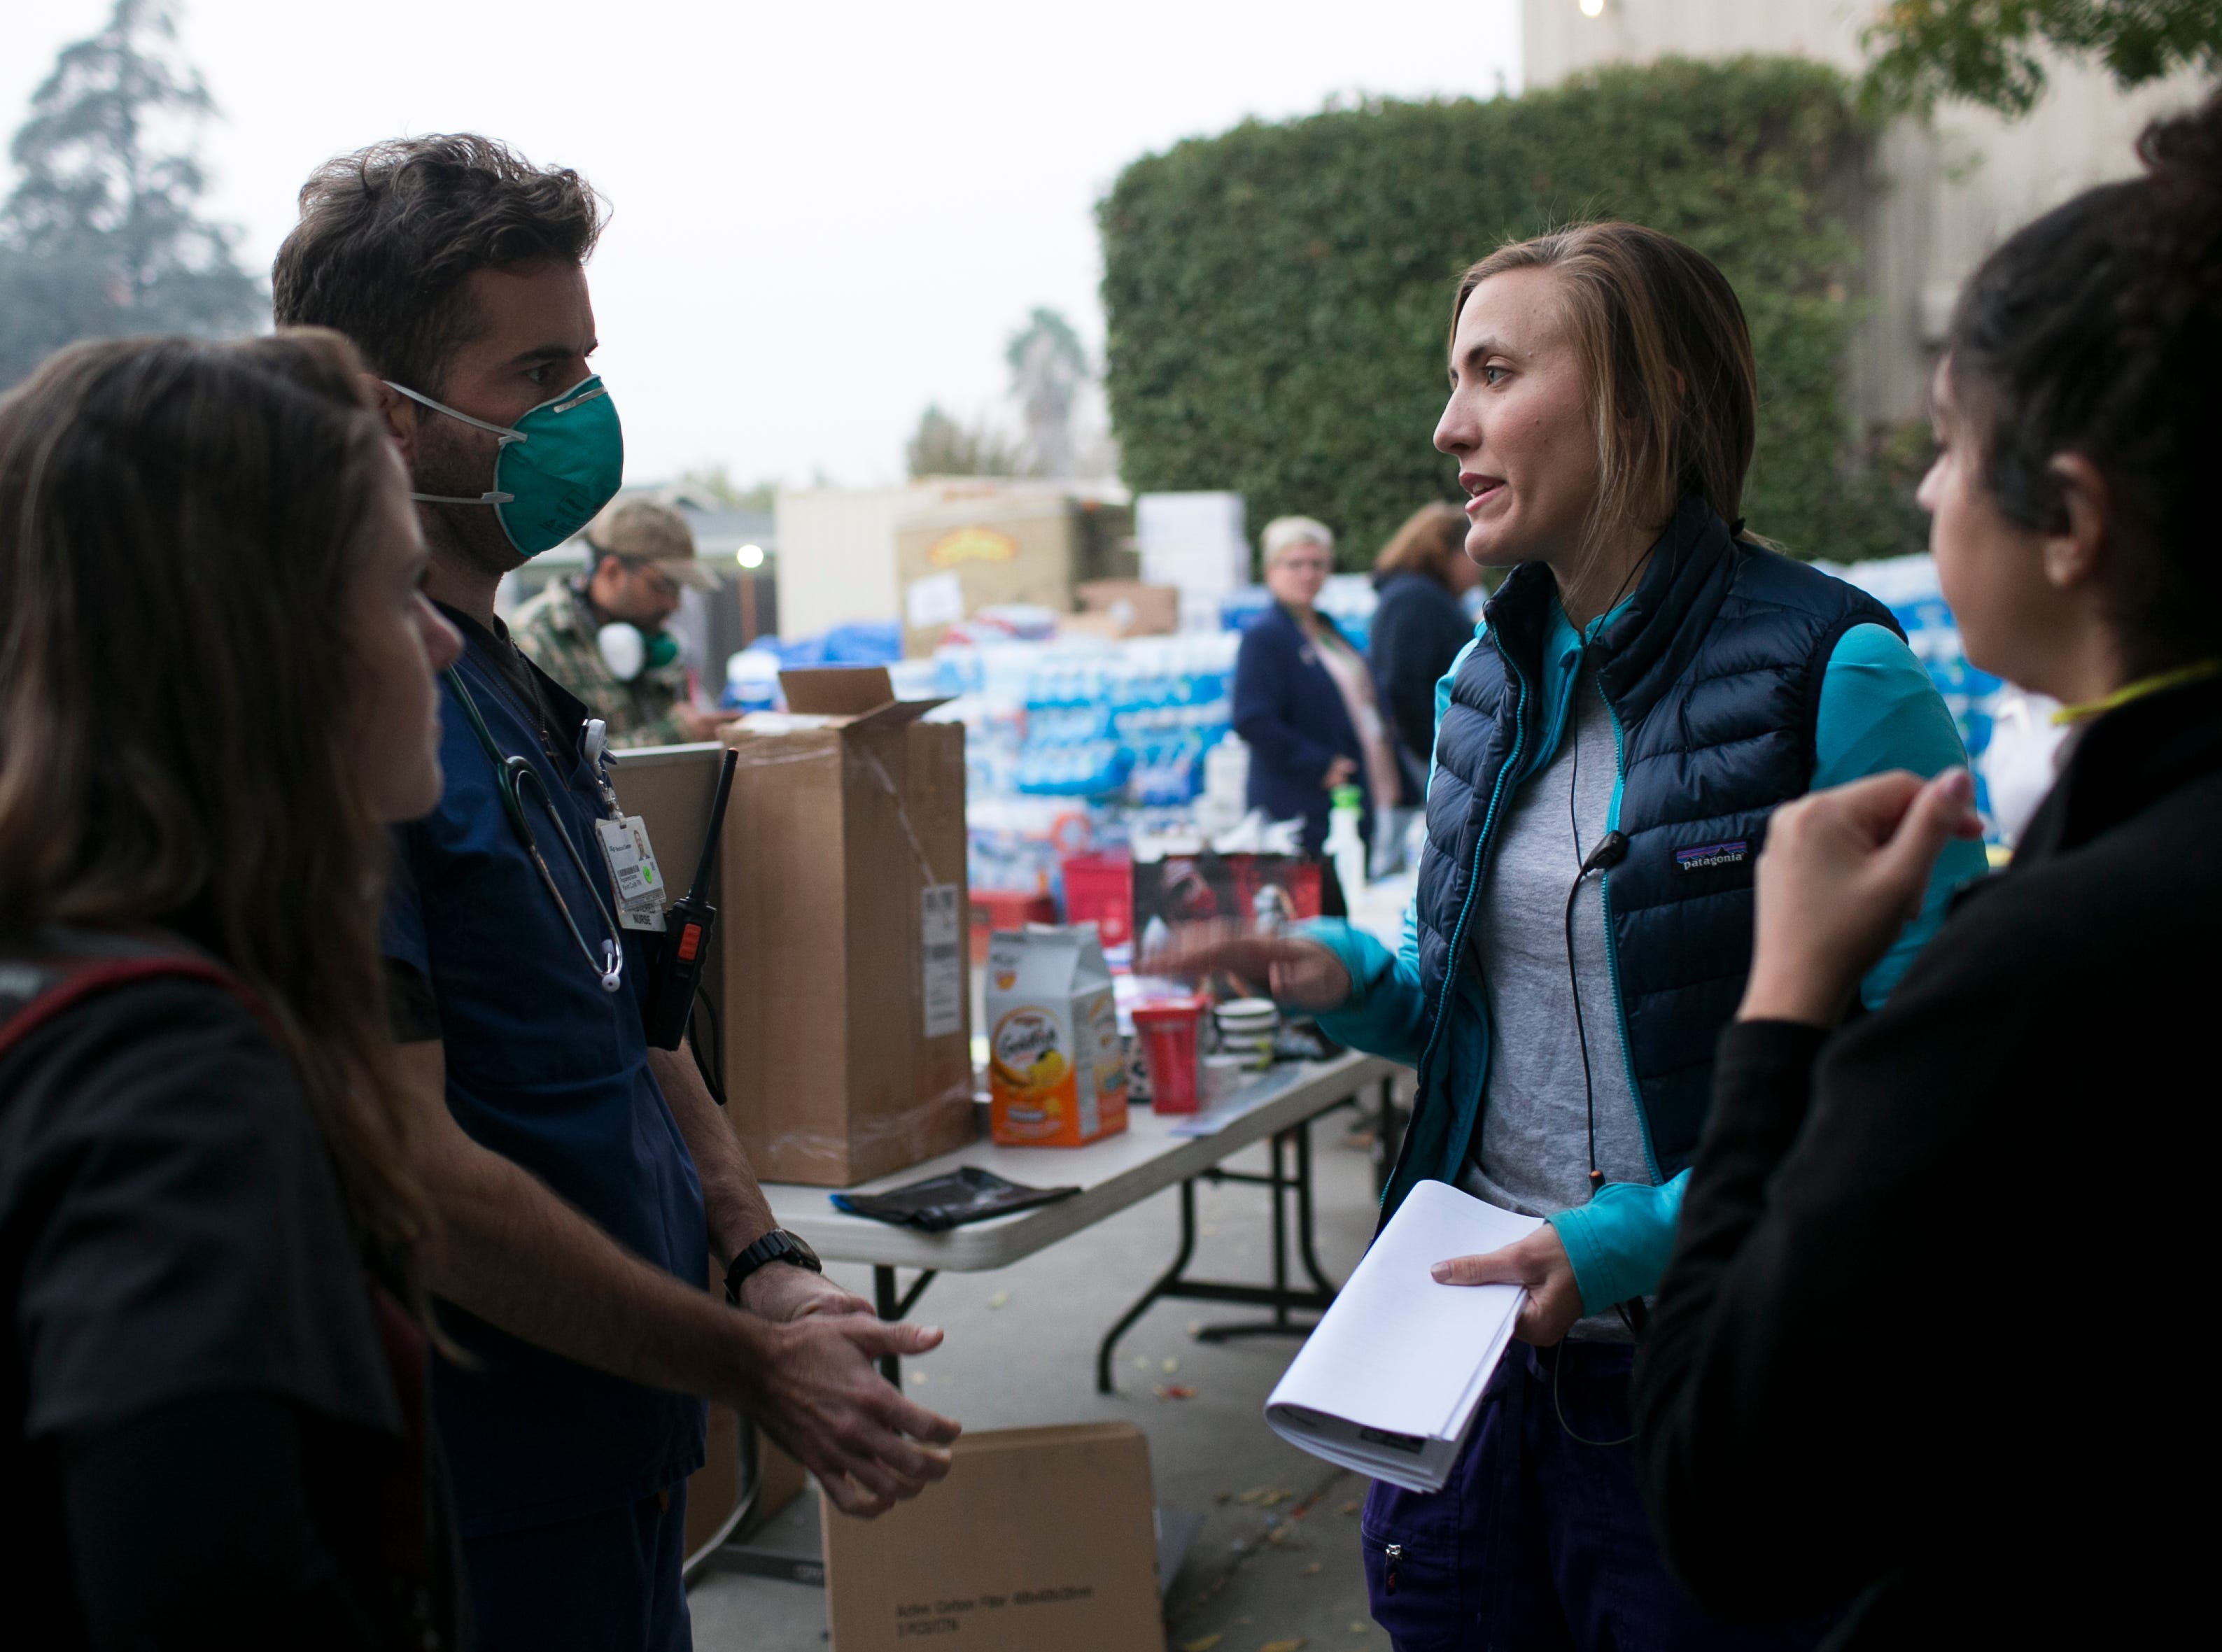 ER nurse Birgitte Randall (Center-right)  speaks with volunteer medical staff at the East Avenue Church Shelter in Chico, California on November 17, 2018. Randall fled her burning hospital Feather River in Paradise as the Camp Fire burned through town, eventually destroying her home. Responding to a Facebook request for help at the East Avenue Shelter, Randall and several of her colleagues and friends quickly sprung to action, starting a pop up clinic at the shelter to aid evacuees in need of medical attention.